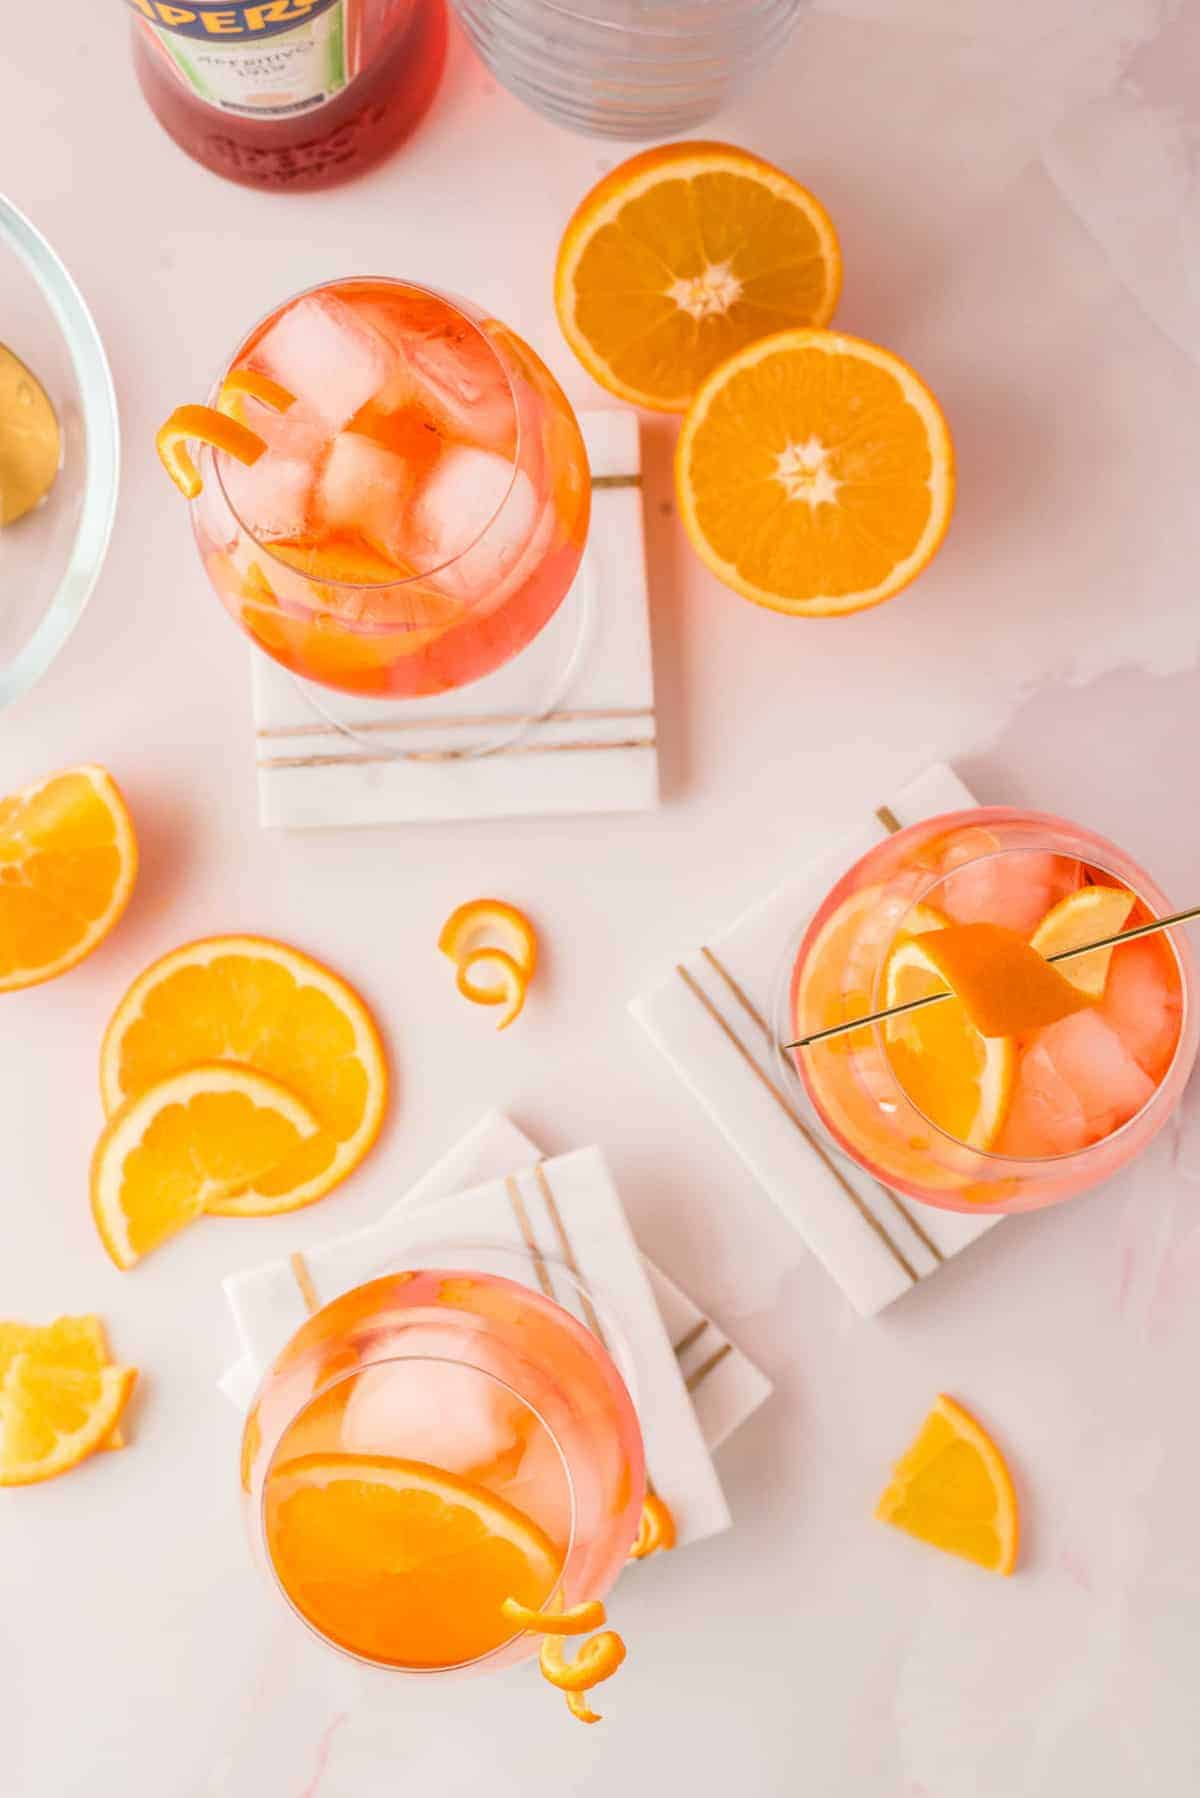 Overhead view of orange-colored drinks over ice, orange slices scattered around.